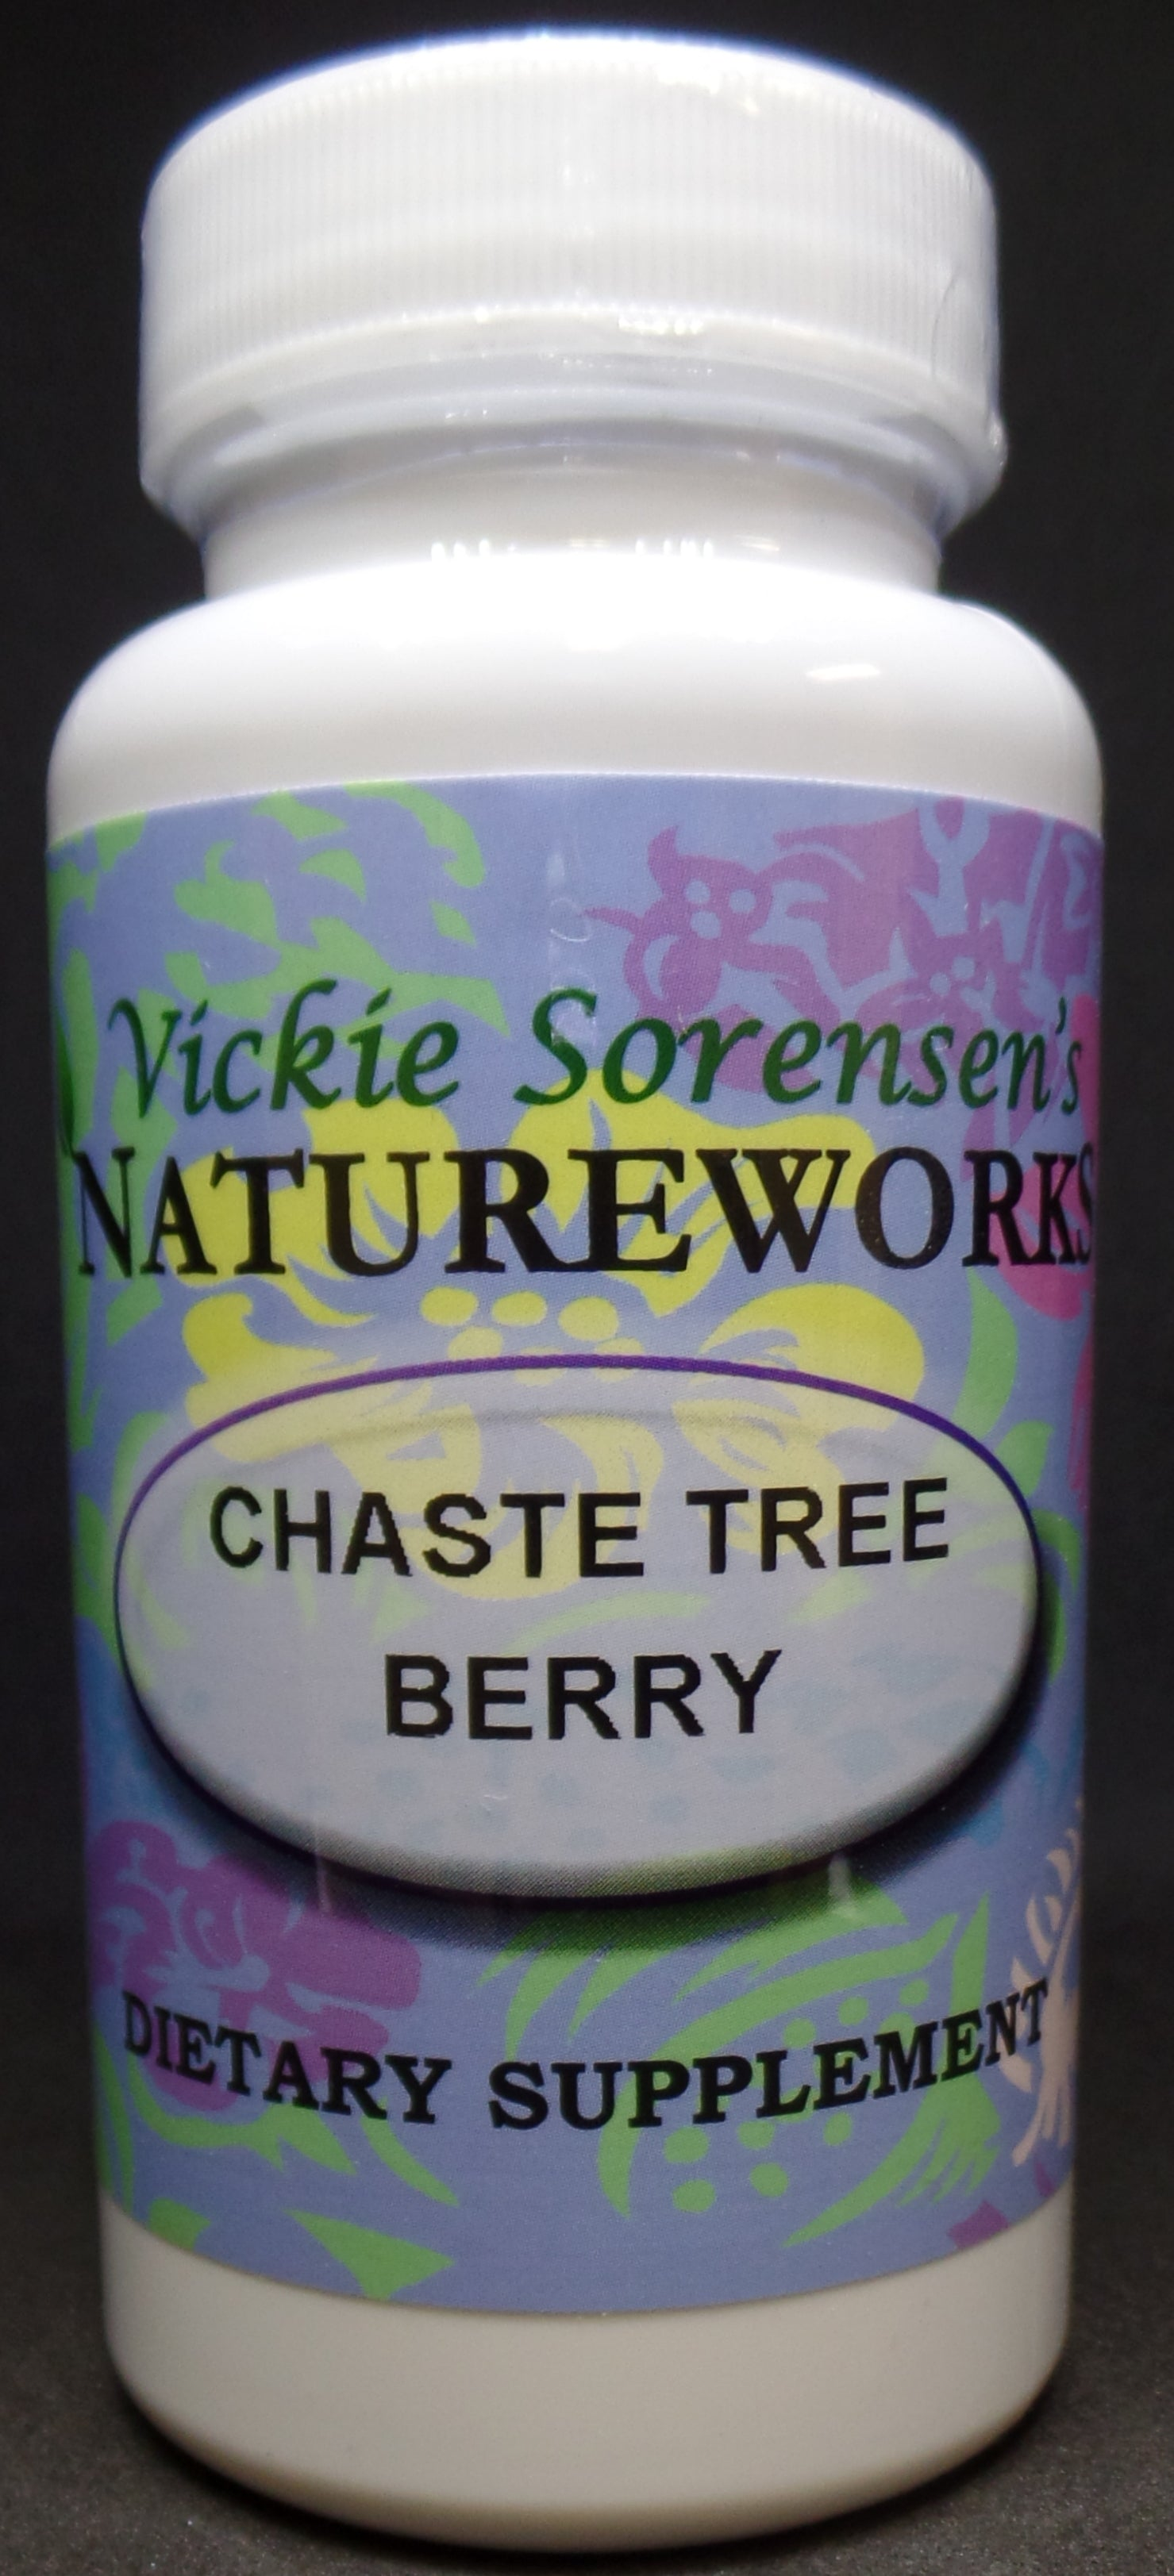 Chaste Tree Berry (Vitex)